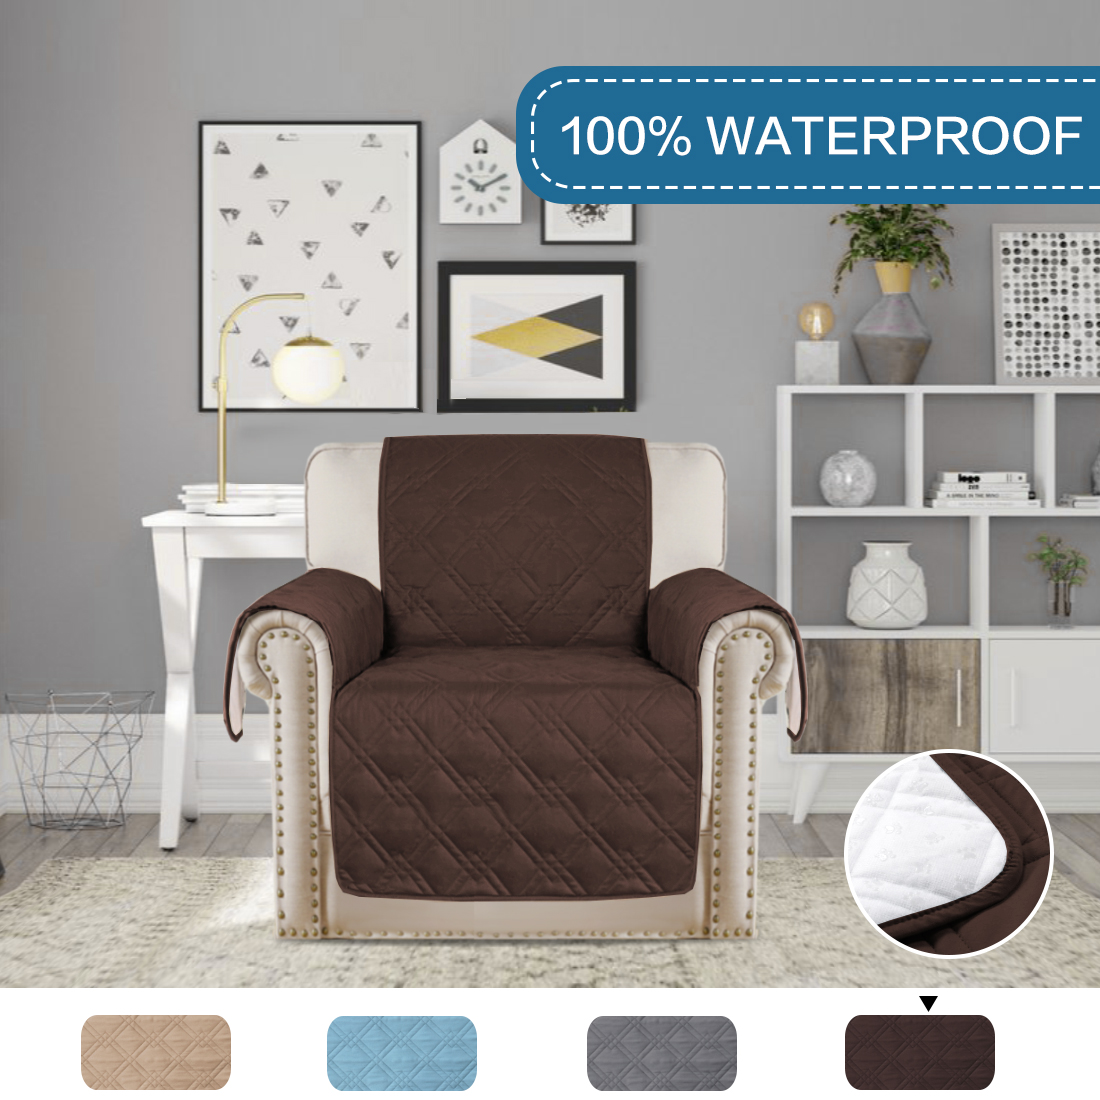 75 X 65 Chair: Brown H.VERSAILTEX 100/% Water Resistant Chair Slipcover Waterproof Furniture Protector Slip Reducing Backing Features Protect from Pets Spills Wear and Tear Stay in Place